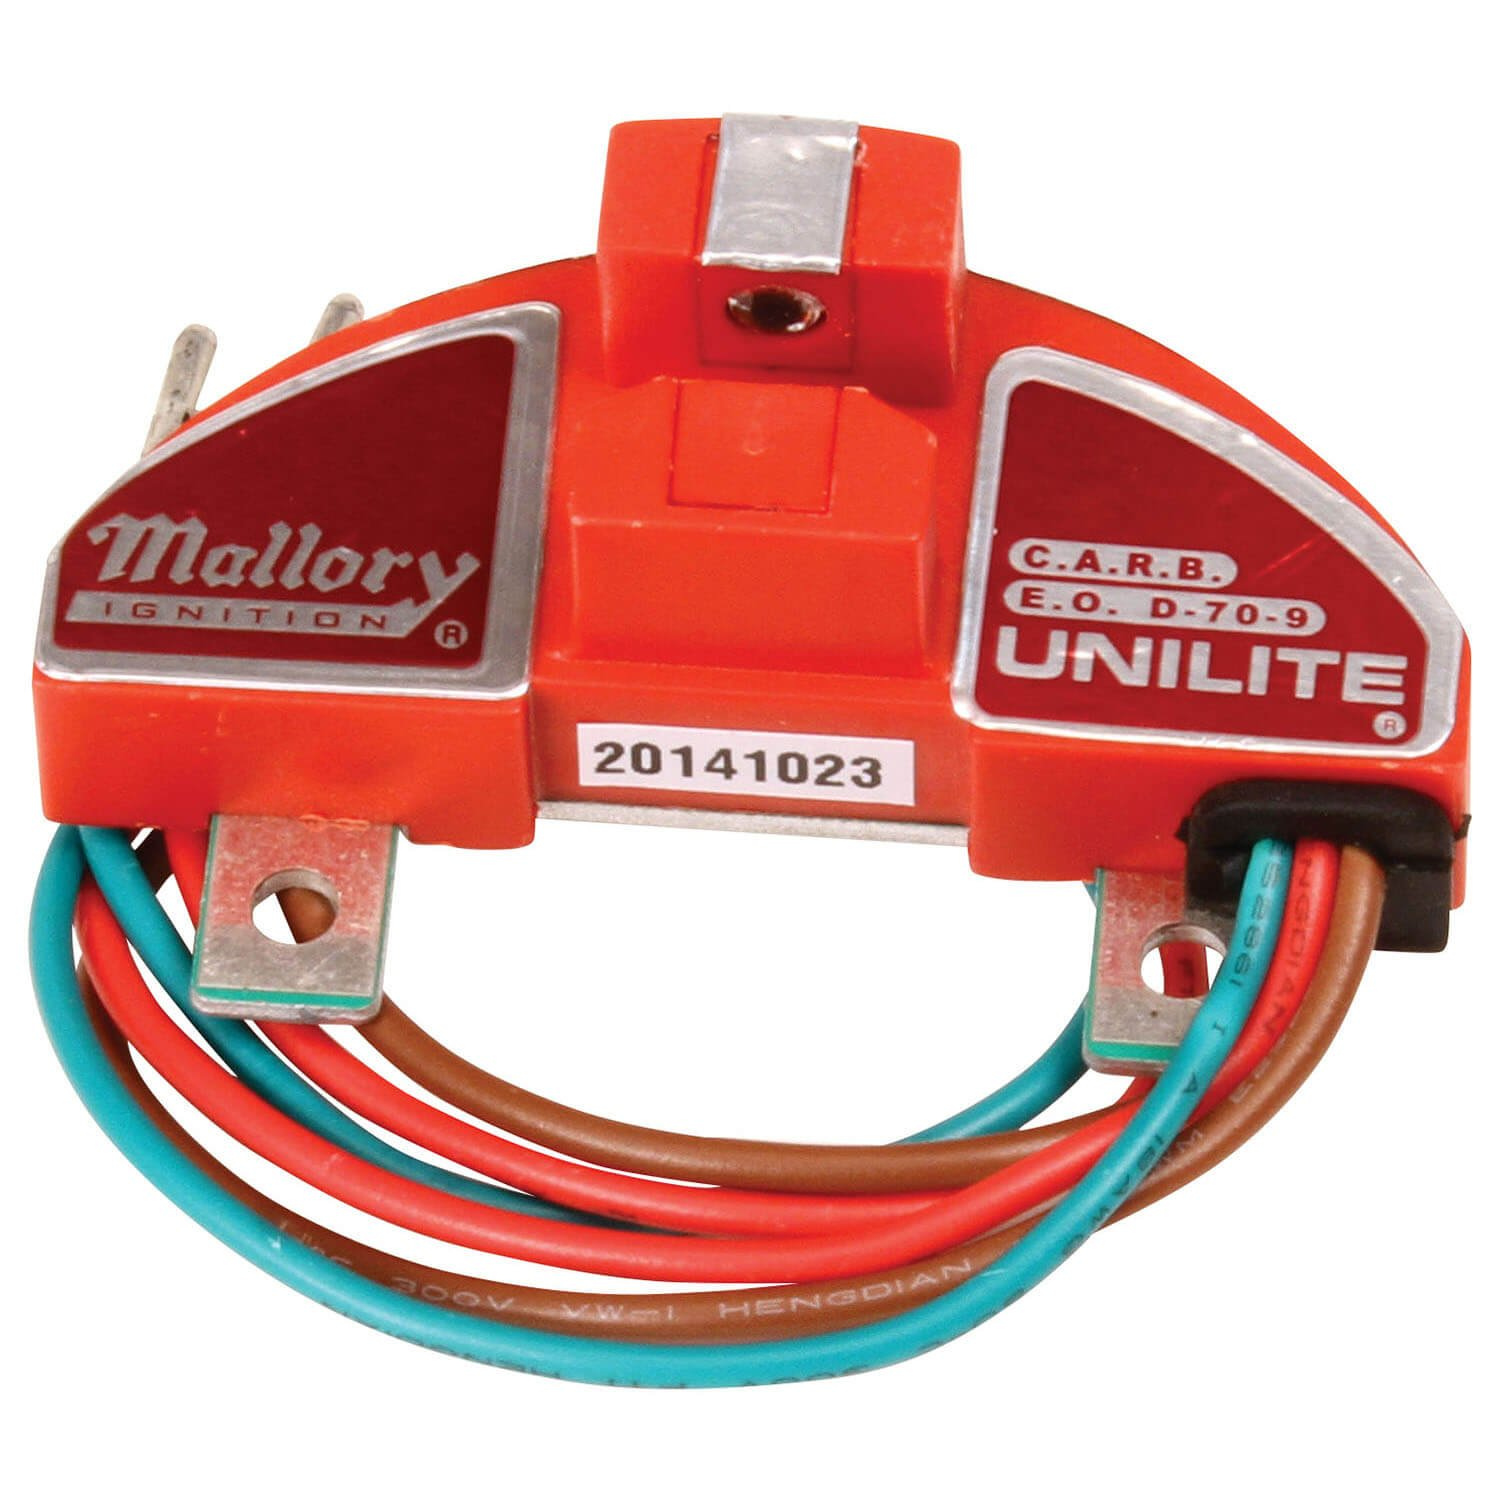 Mallory 605 Mallory Module, Unilite®, Thermaclad on ignition ballast resistor wiring diagram, ignition coil wiring diagram, willys jeep ignition wiring diagram, mg midget ignition wiring diagram, 67 mustang ignition wiring diagram, points ignition wiring diagram, msd ignition wiring diagram, distributor diagram, ford duraspark ignition wiring diagram, vw ignition wiring diagram, ignition coil circuit diagram, mallory tachometer wiring diagram,